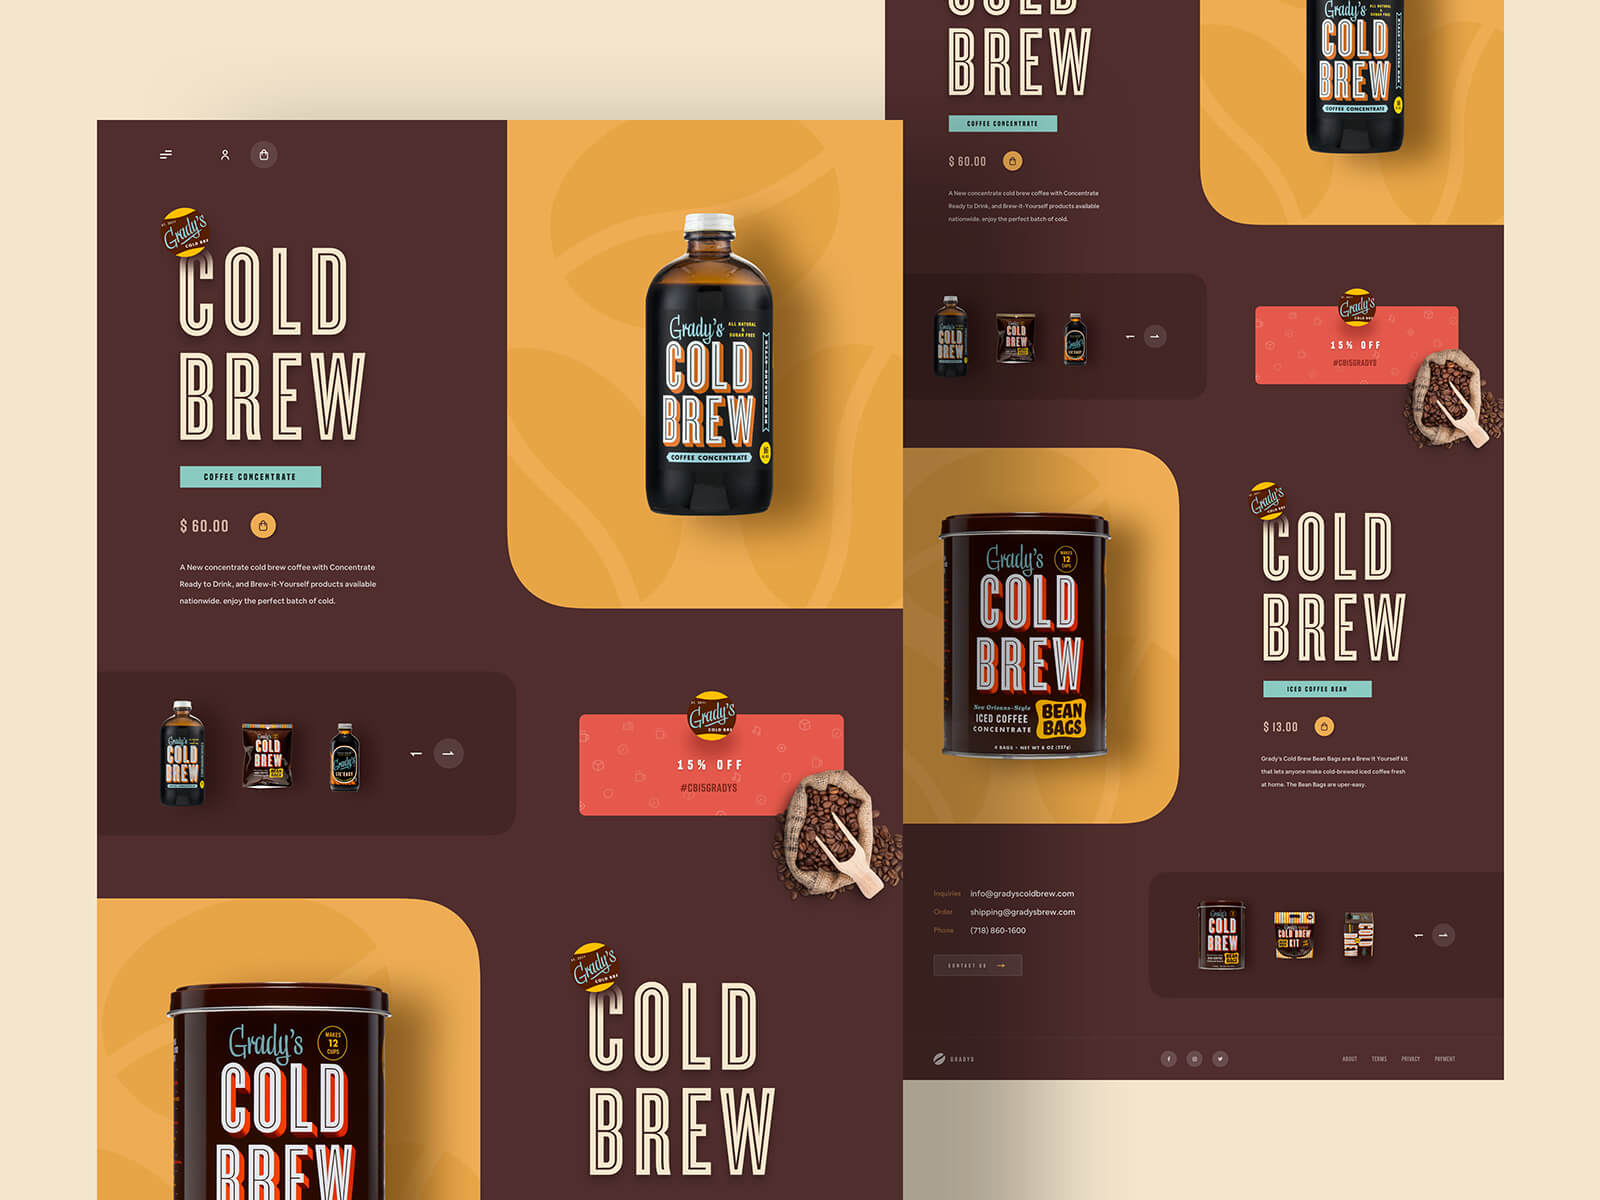 Homepage design for a company that sells cold brew coffee